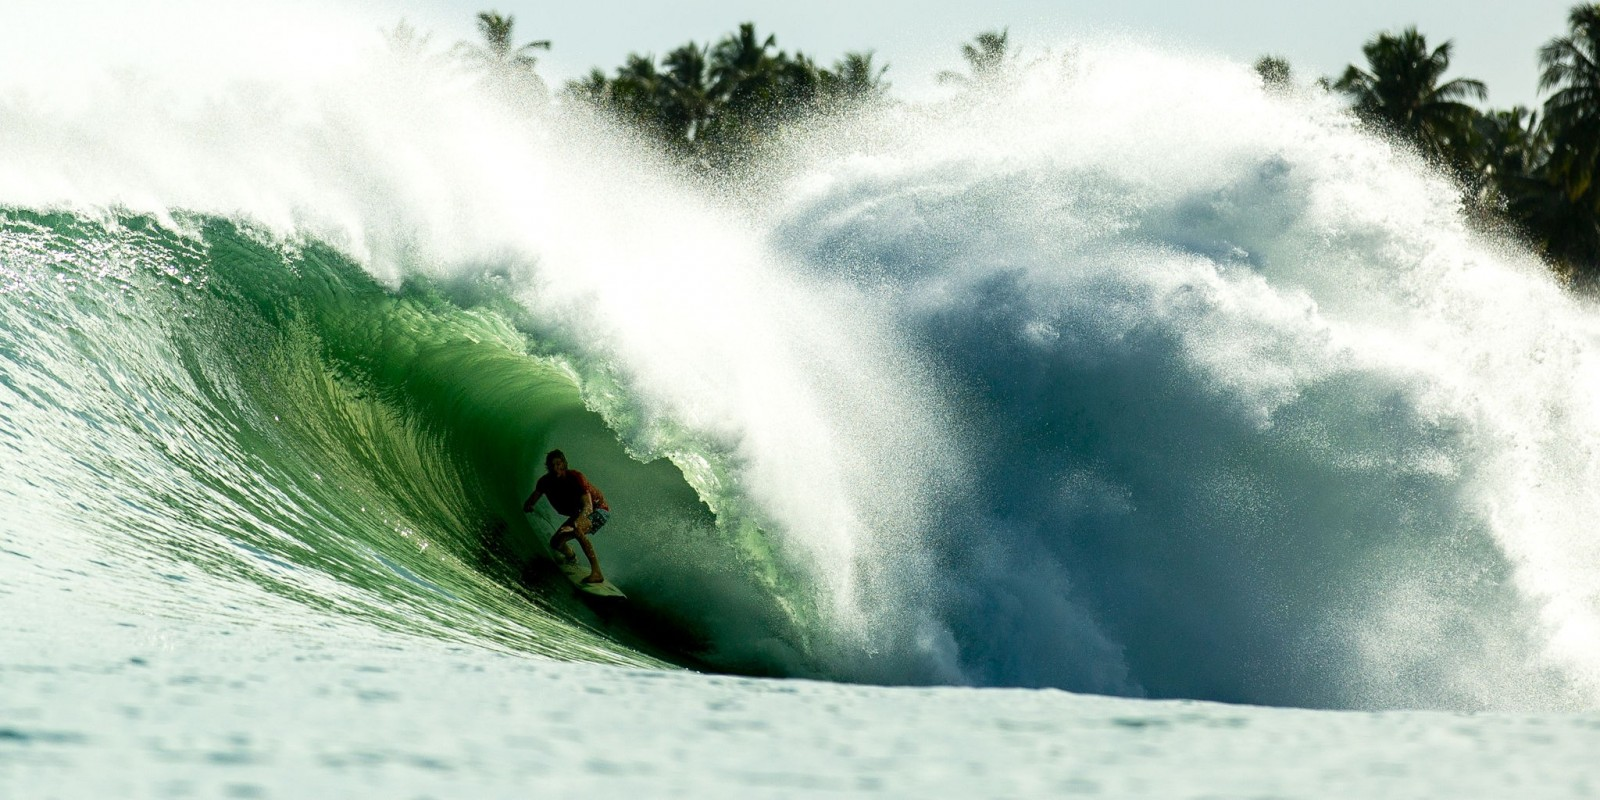 Matt Bromley Risky Ripples Ep 2 - Foreign Lands, Indonesia.